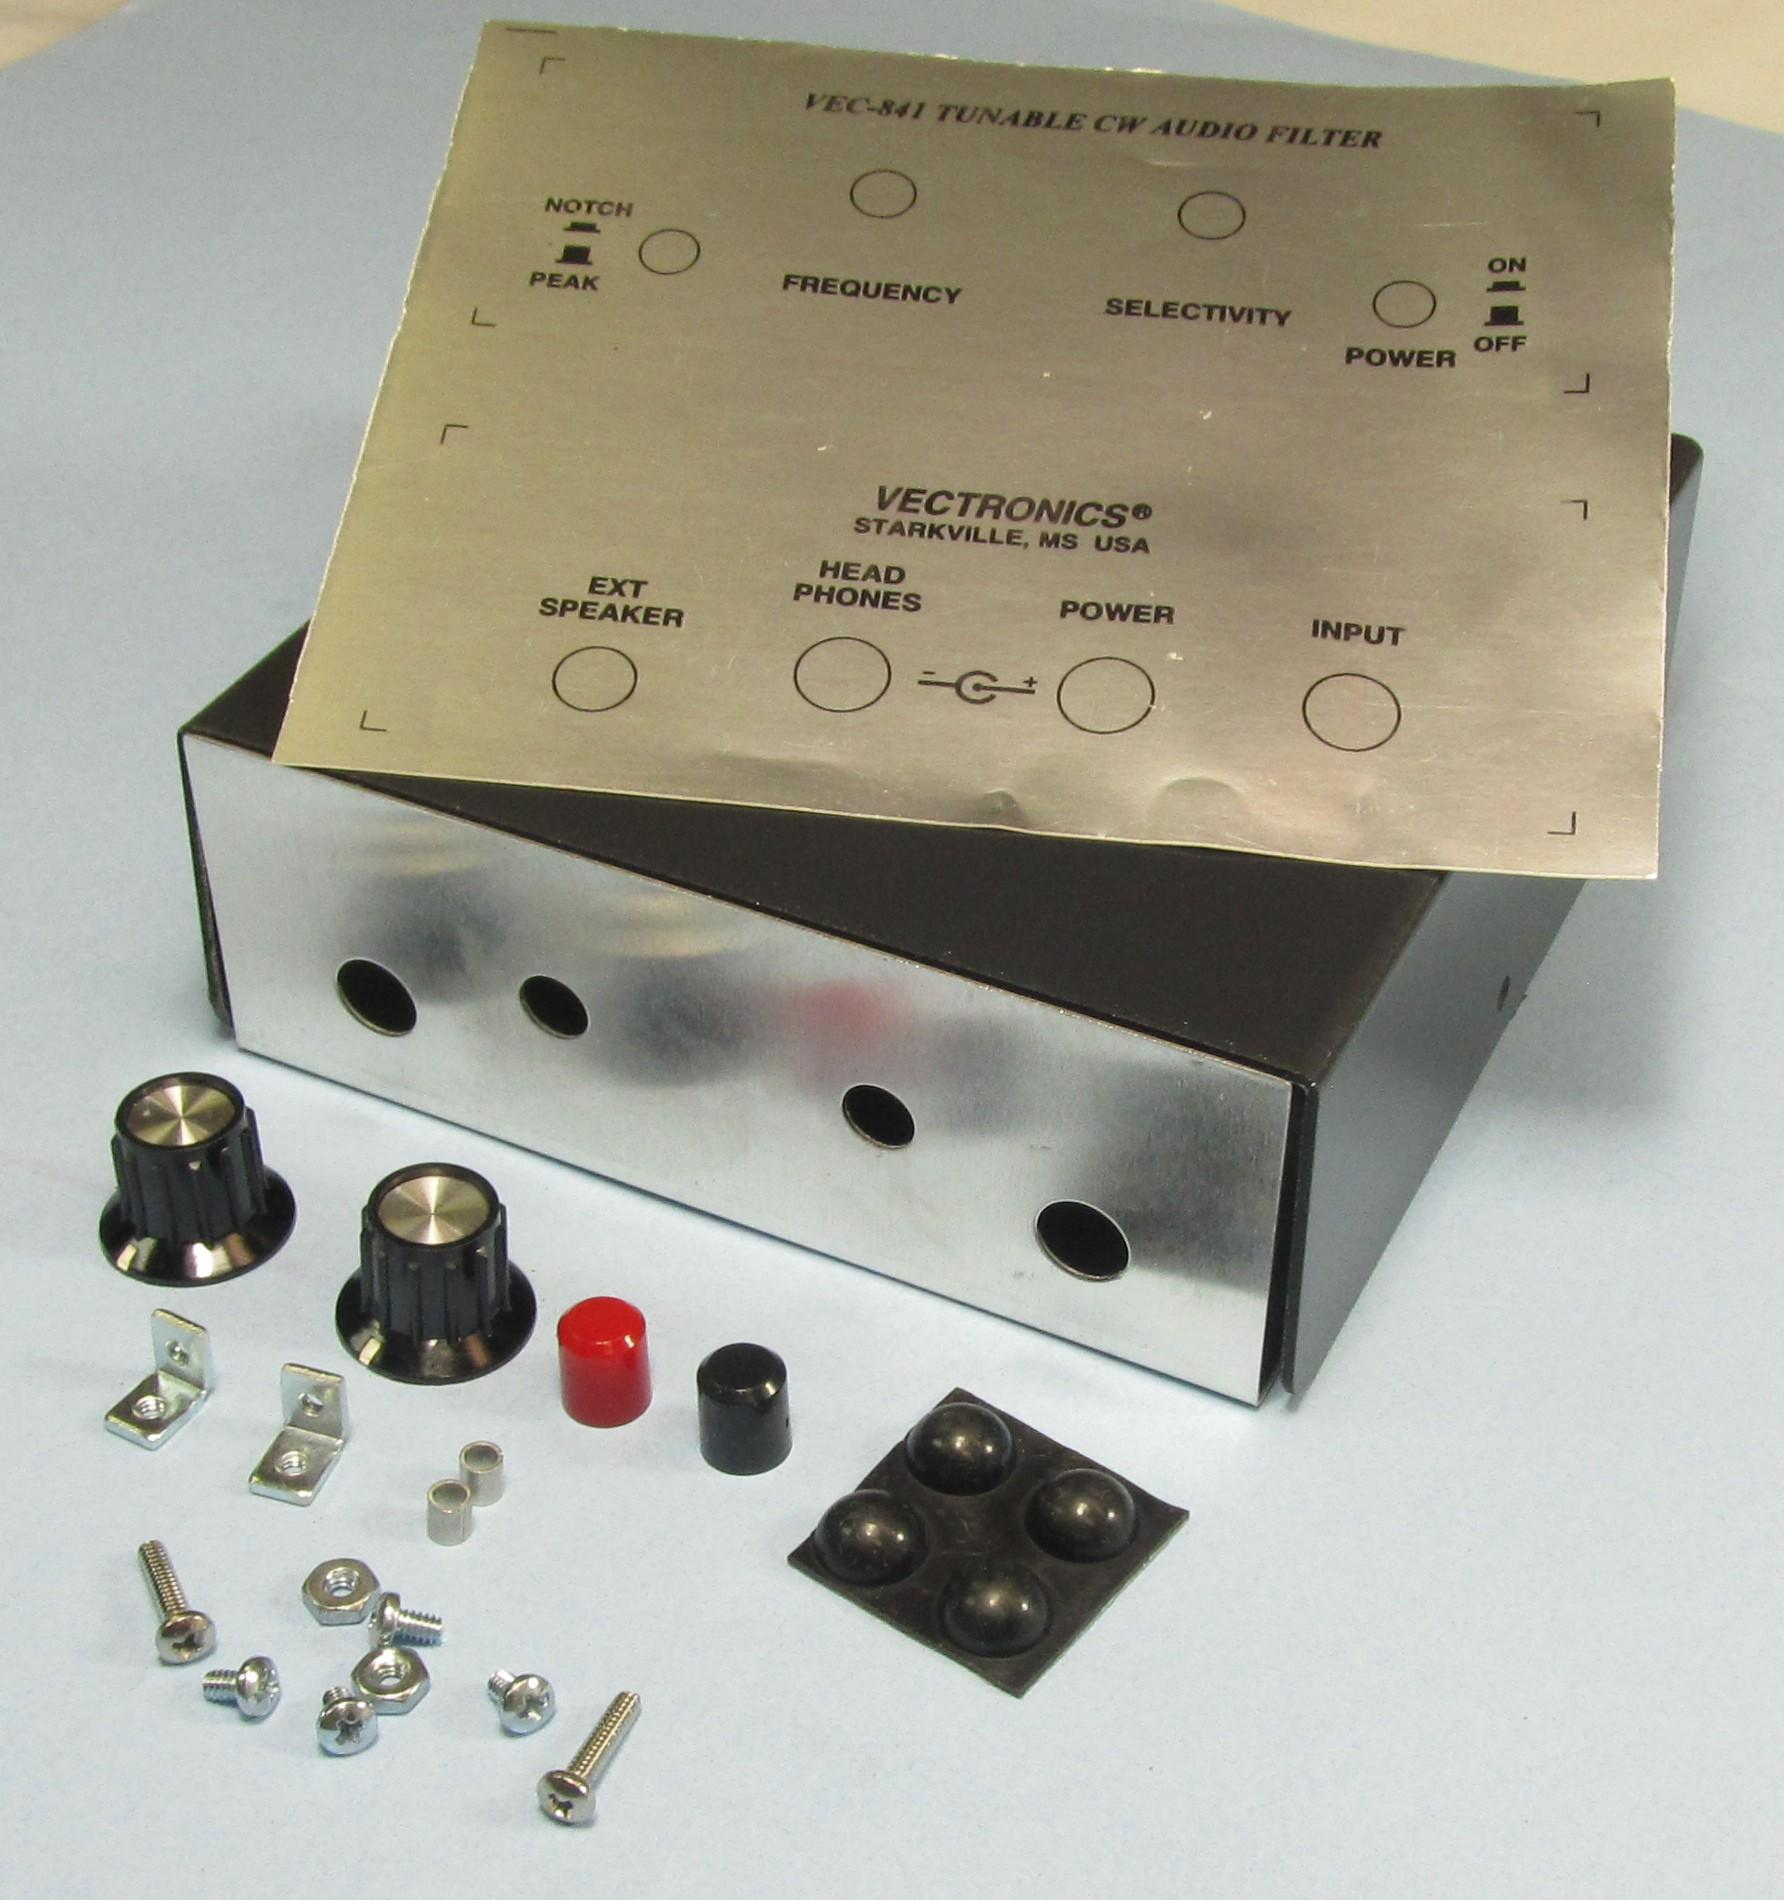 VEC-841KC Vectronics Metal Case & Knob Set for VEC-841K kit